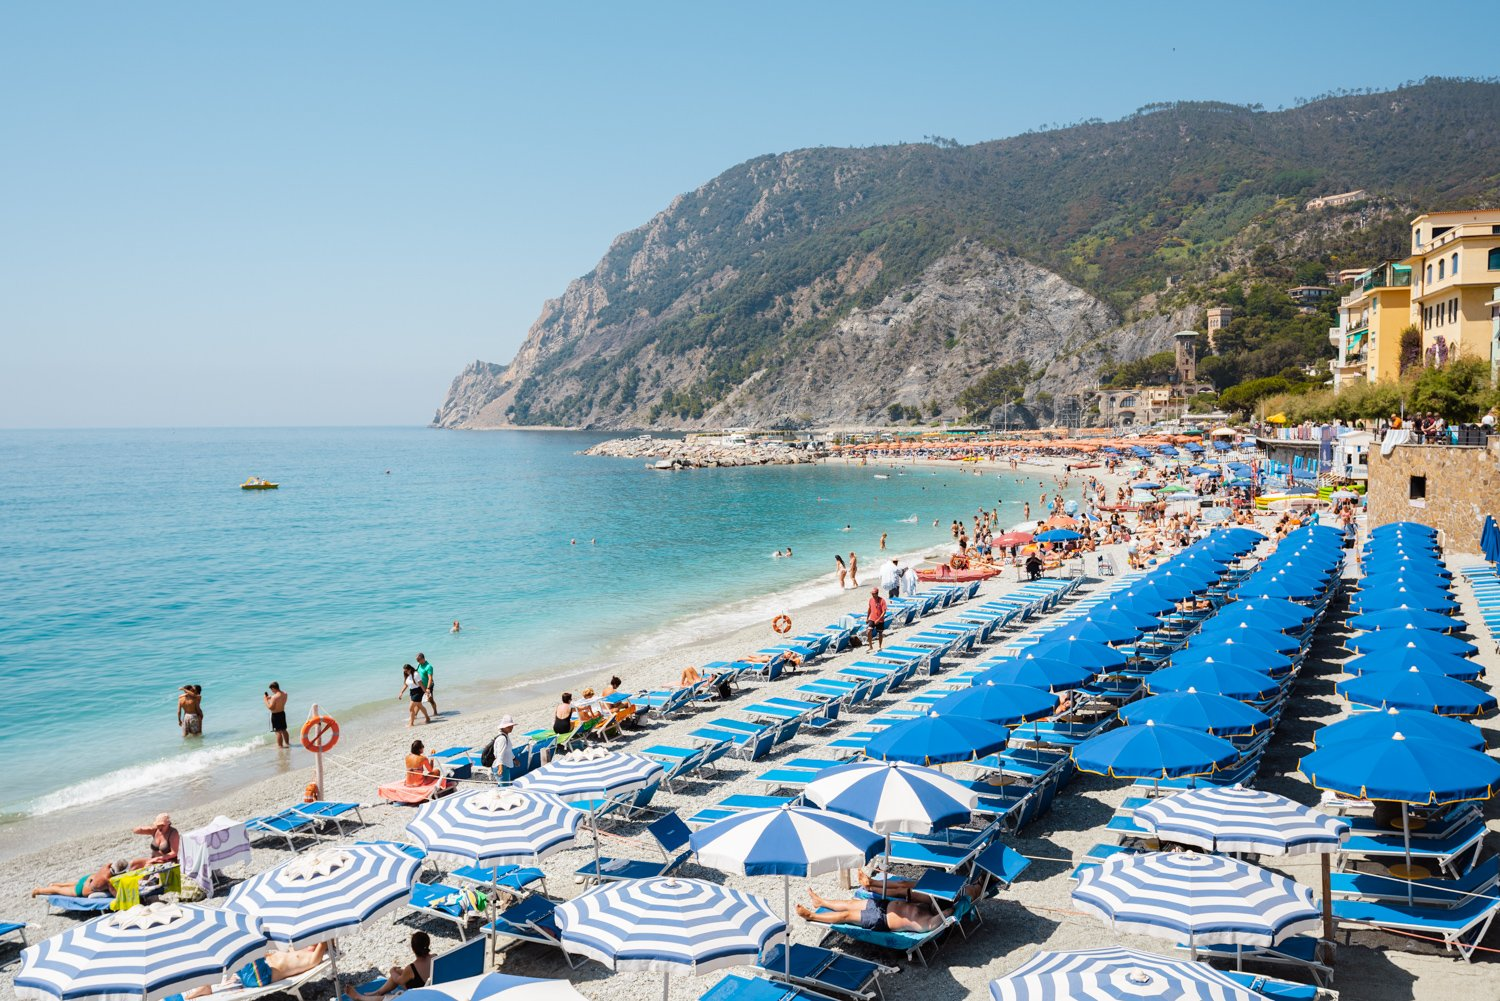 People and umbrellas at Monterosso beach Cinque Terre during summer